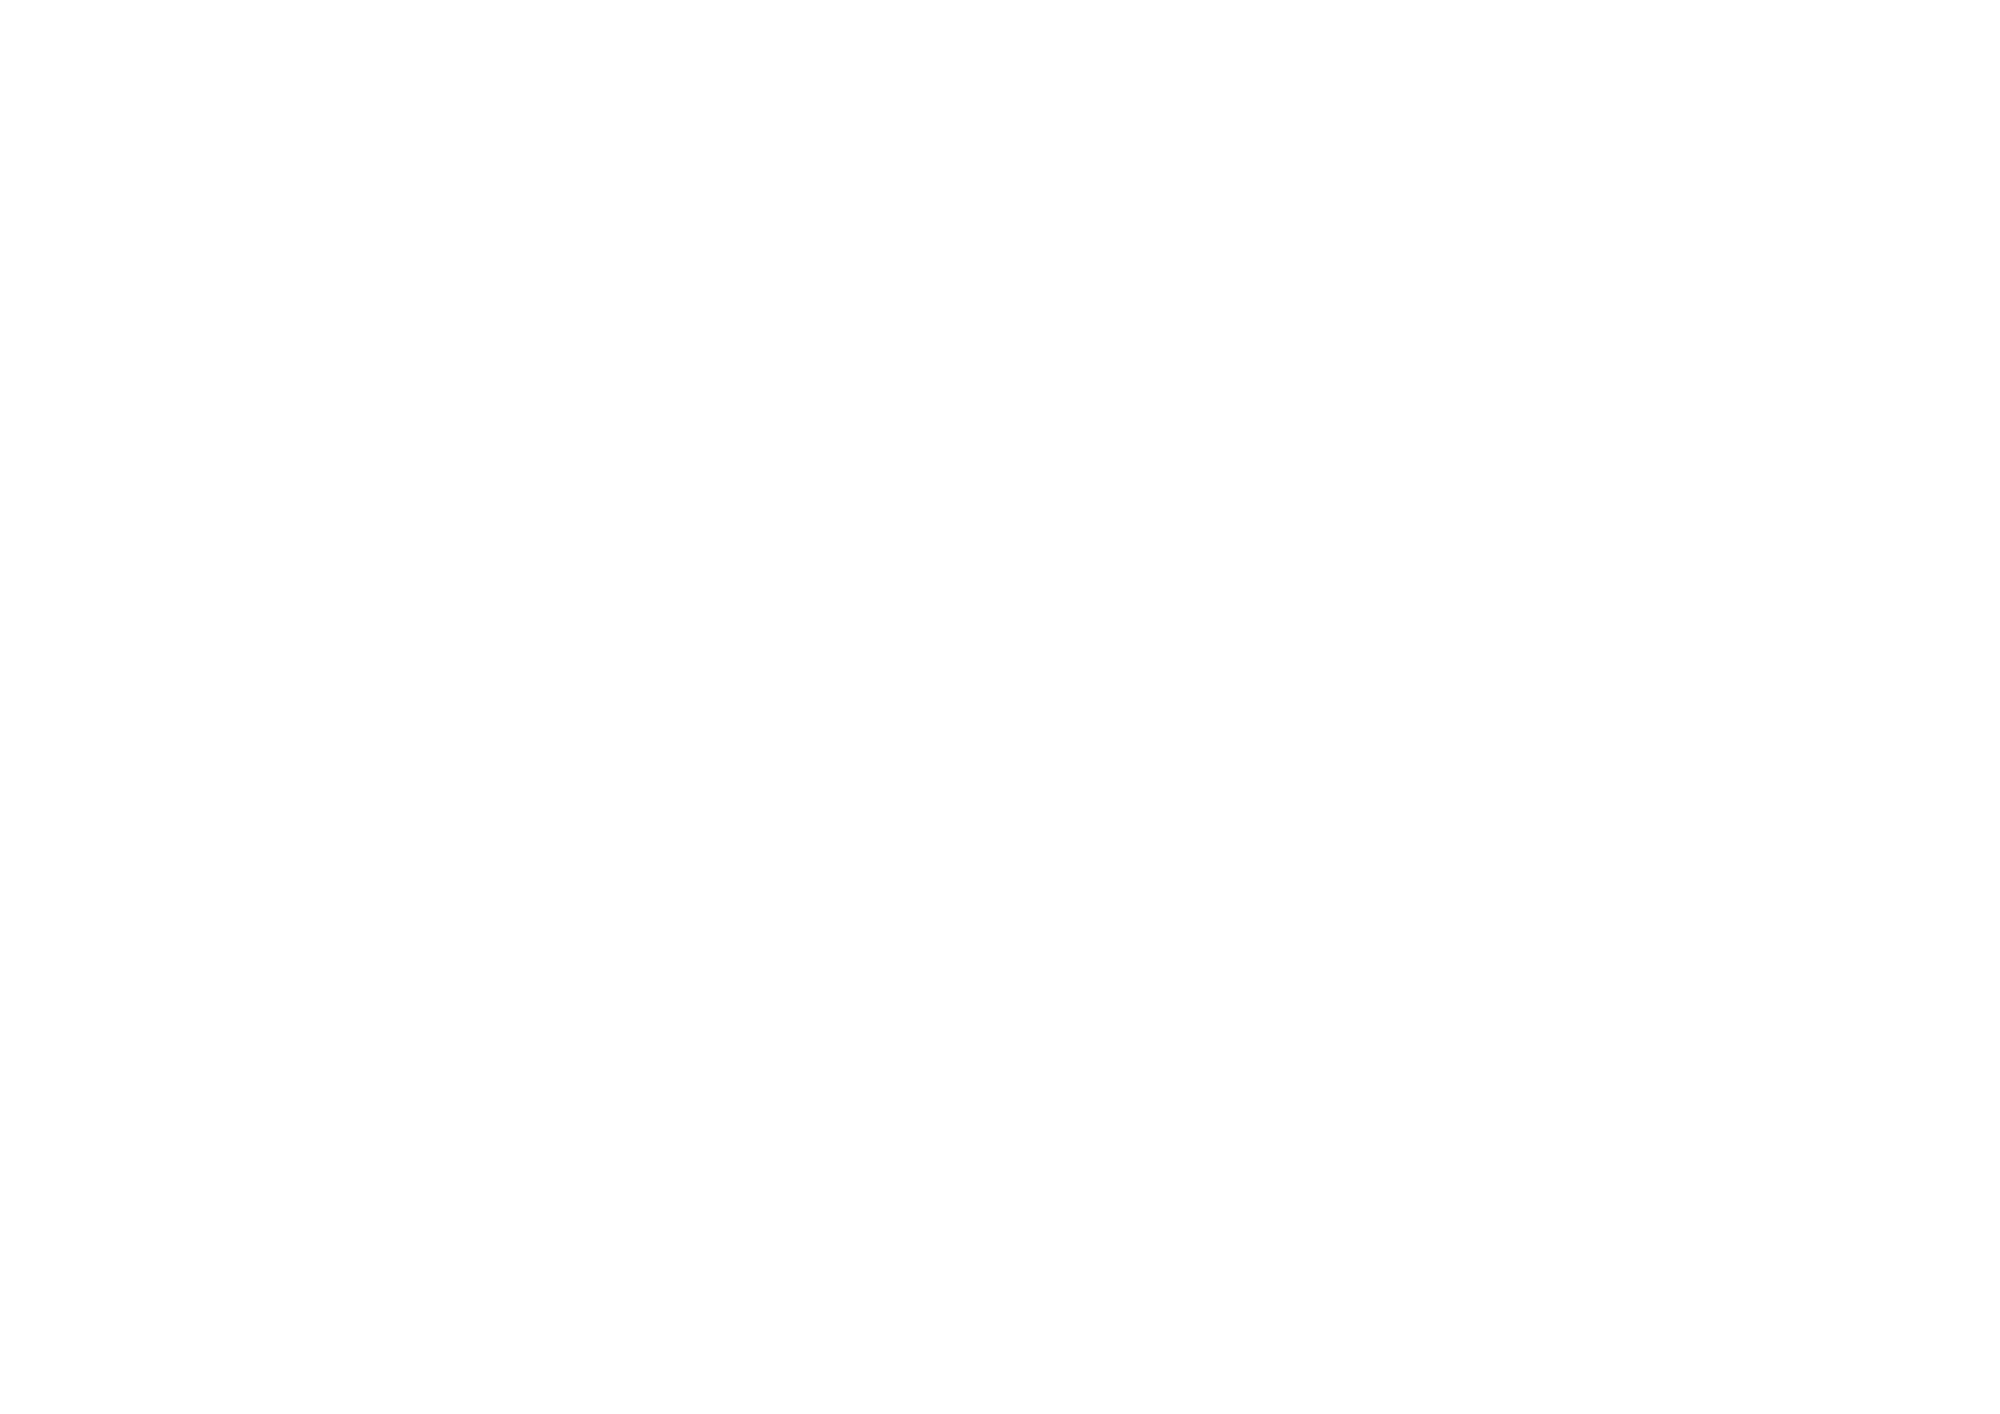 Logo of Crumplebury